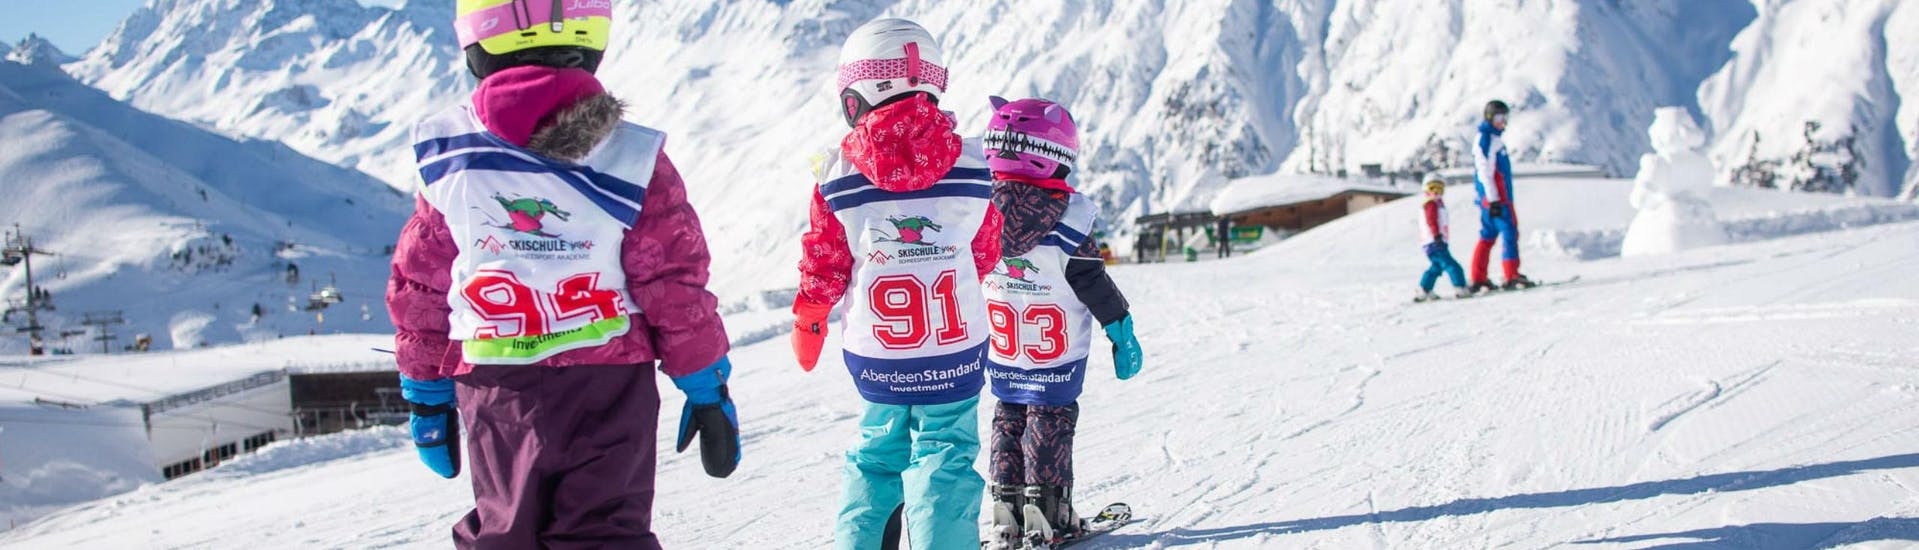 Three young kids are sking in a row behind one another along a flat plane of snow during their Kids Ski Lessons (6-15 years) - First Timer in the ski resort of Ischgl.